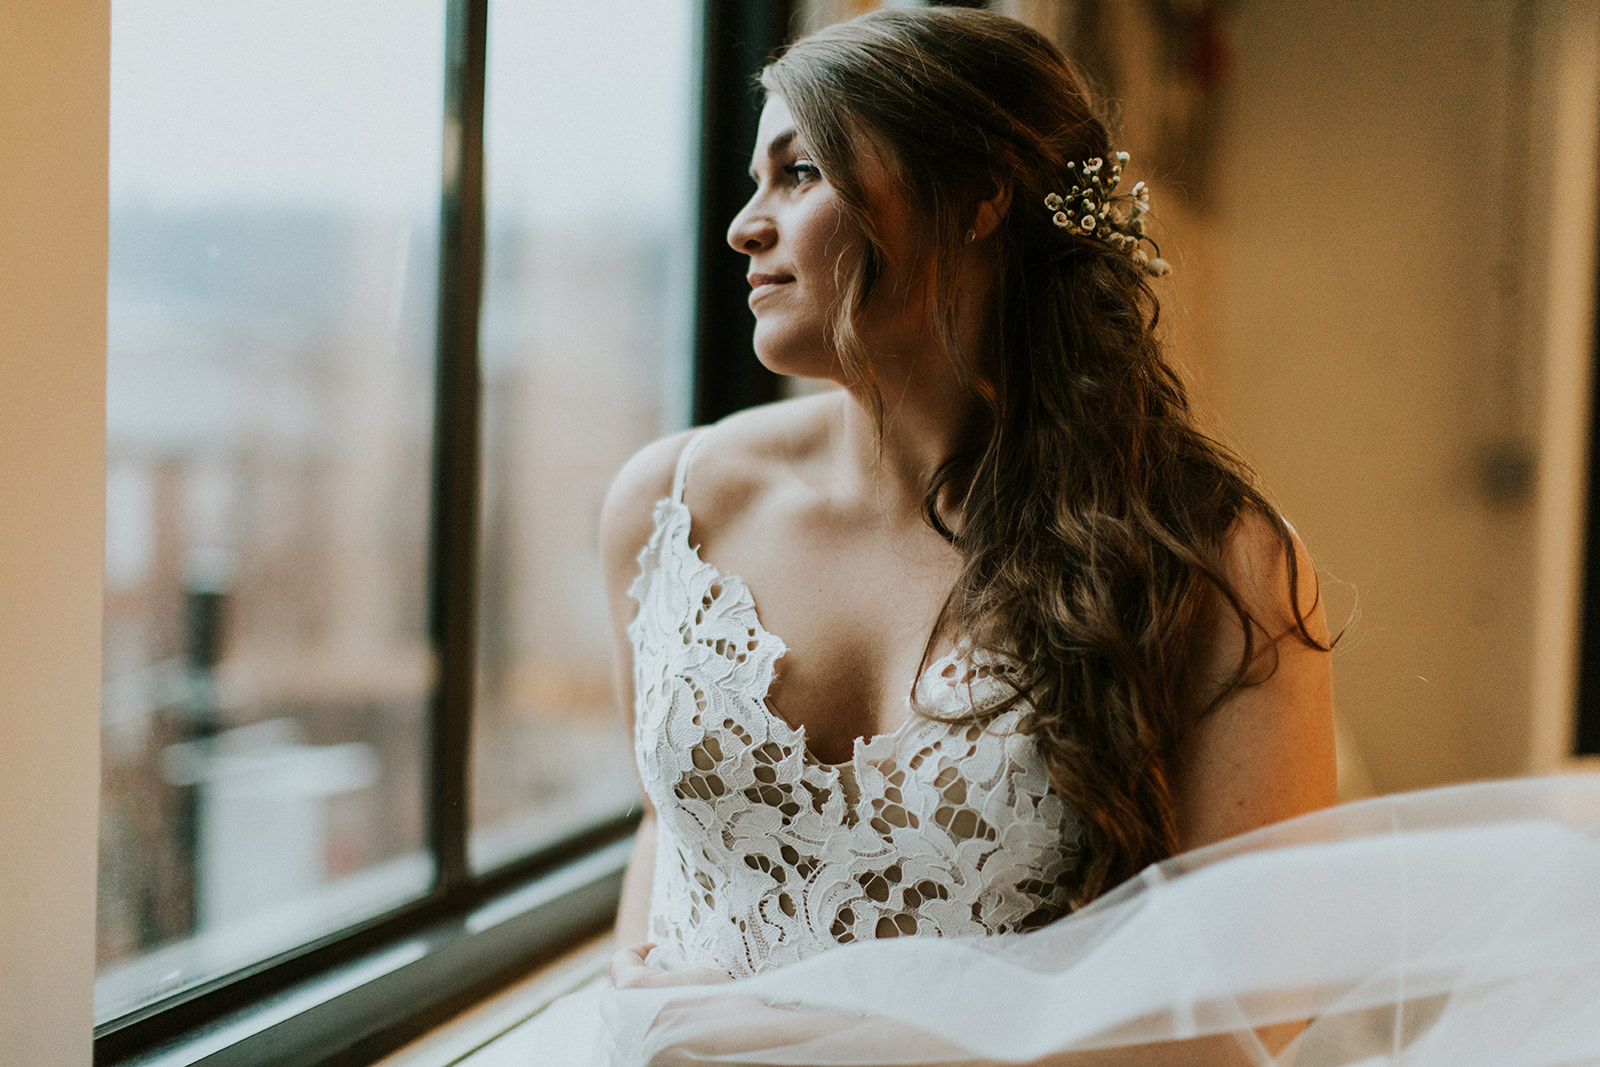 Becca-Tyler-Bride-Portrait-Couture-Closet-Hayley-Paige-Madeline-Thompson.jpg